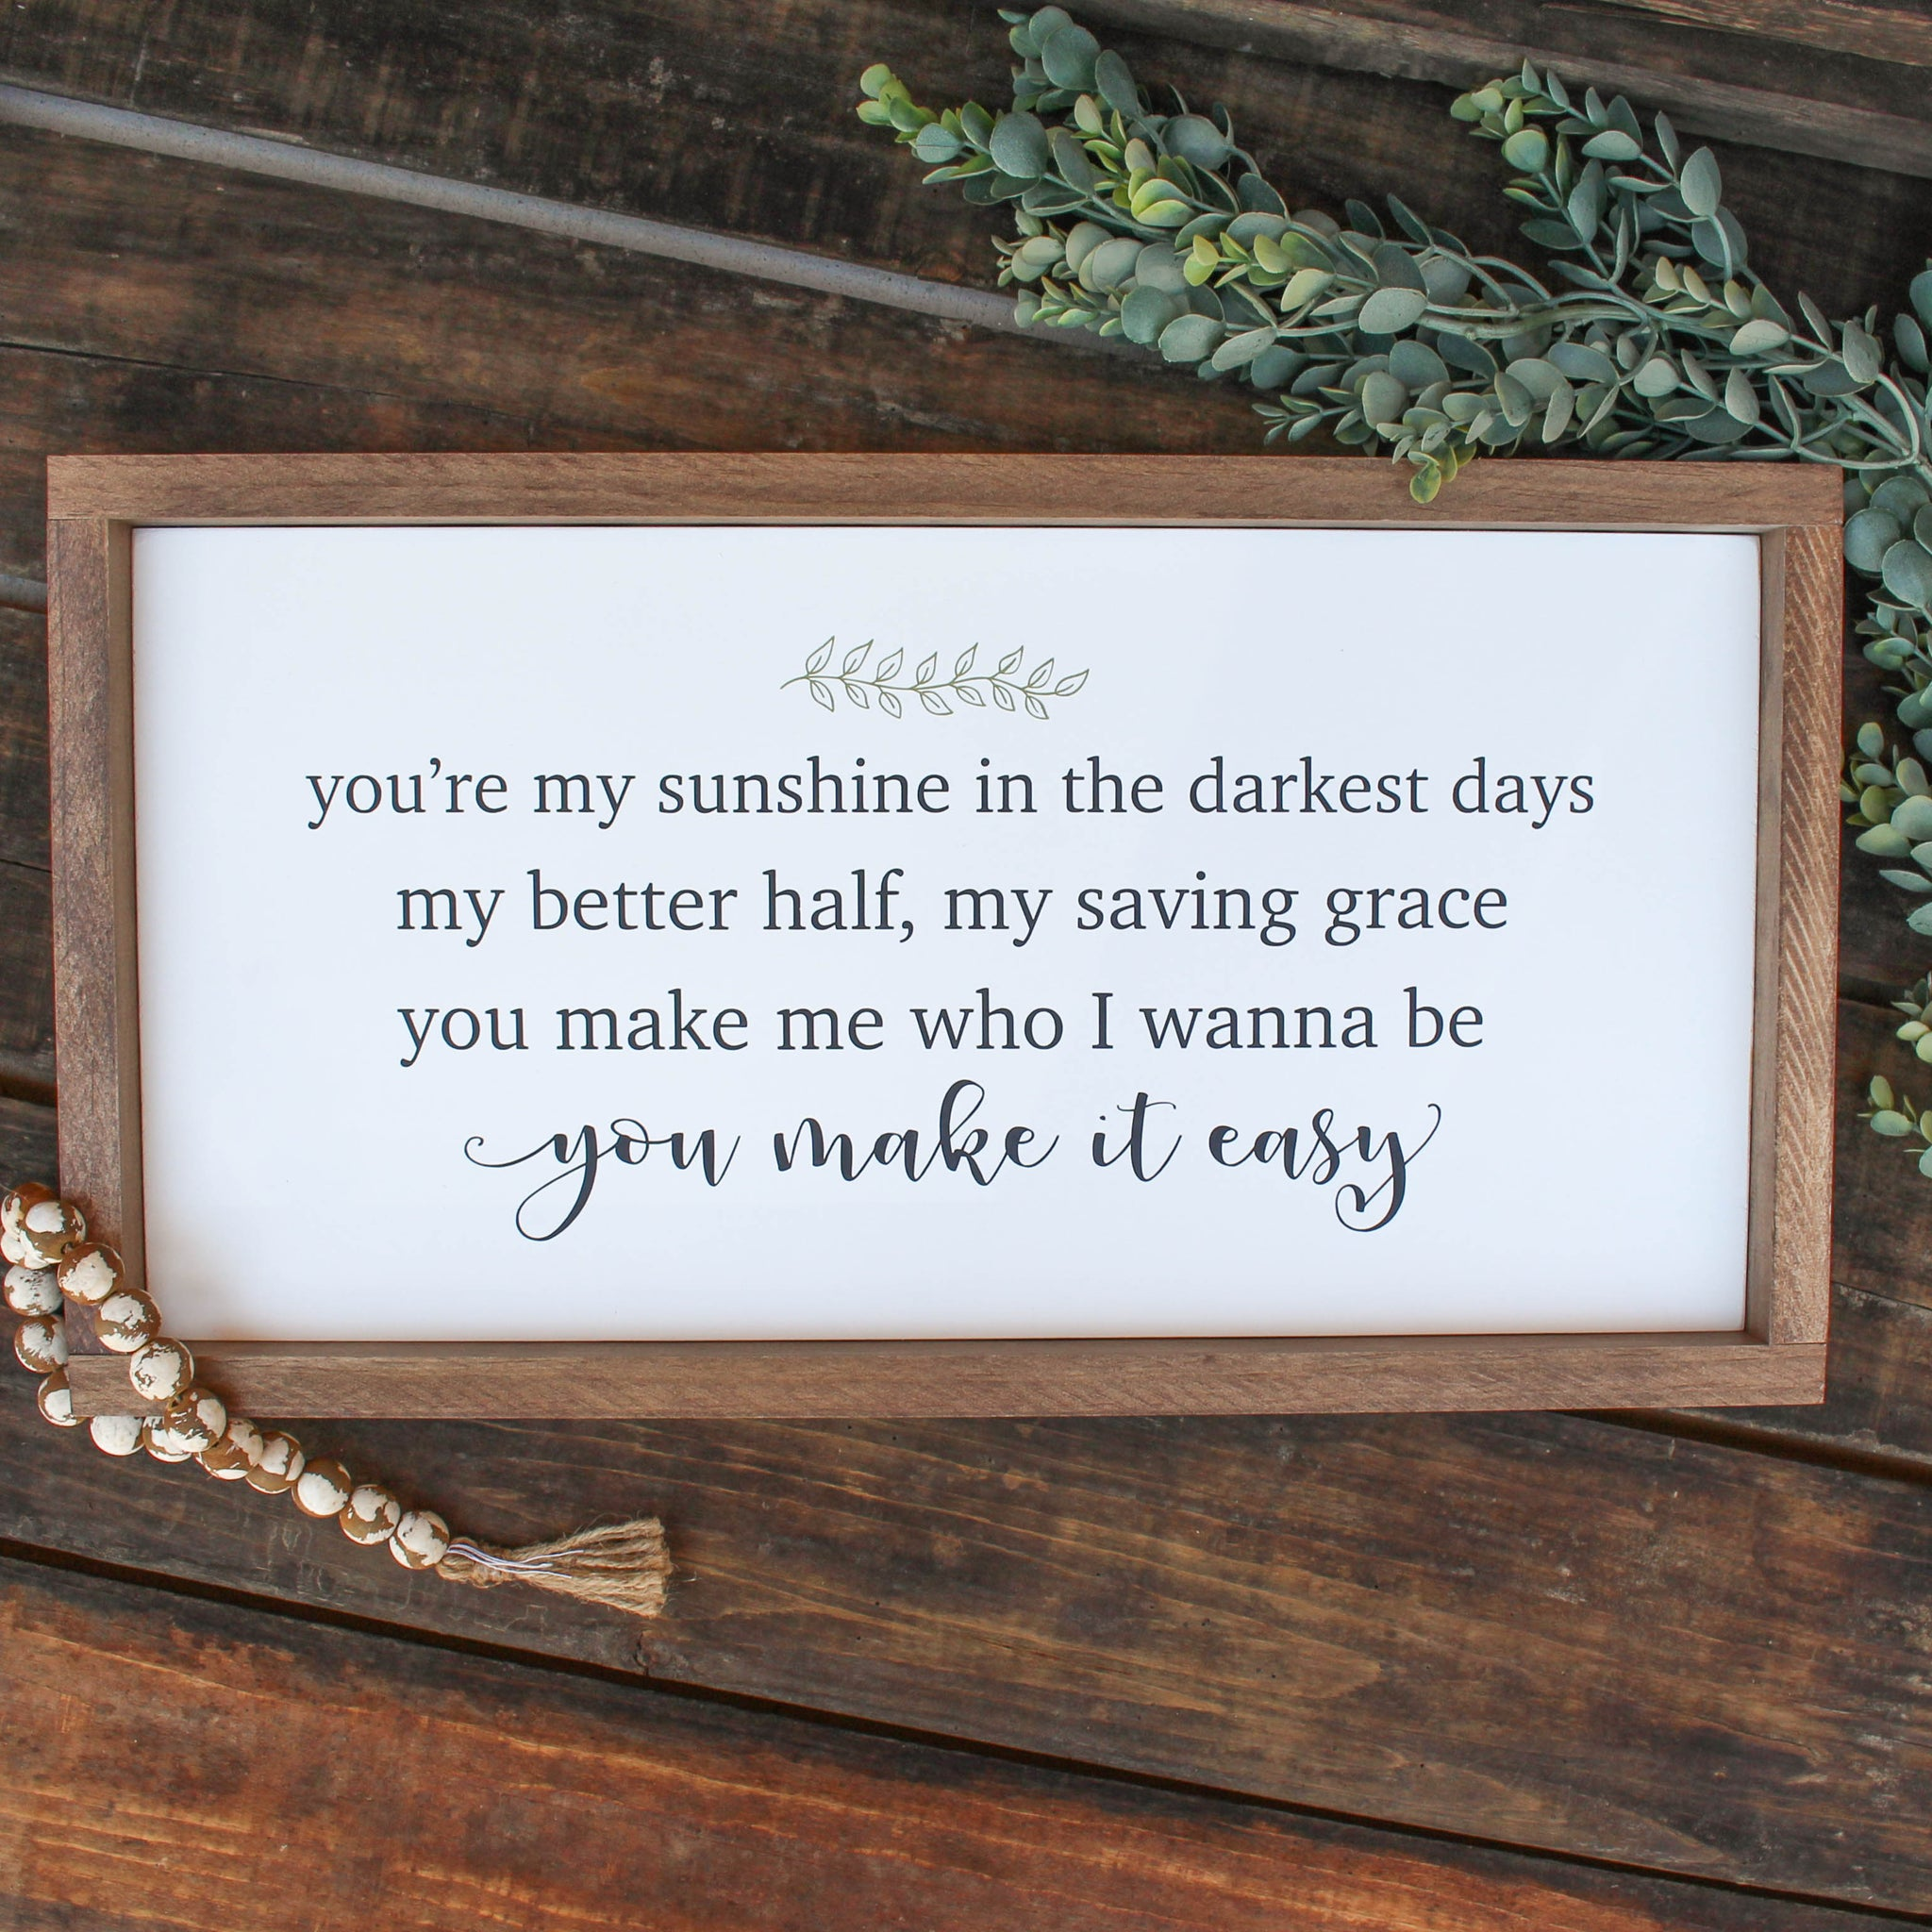 You're my sunshine in my darkest days sign // FREE SHIPPING